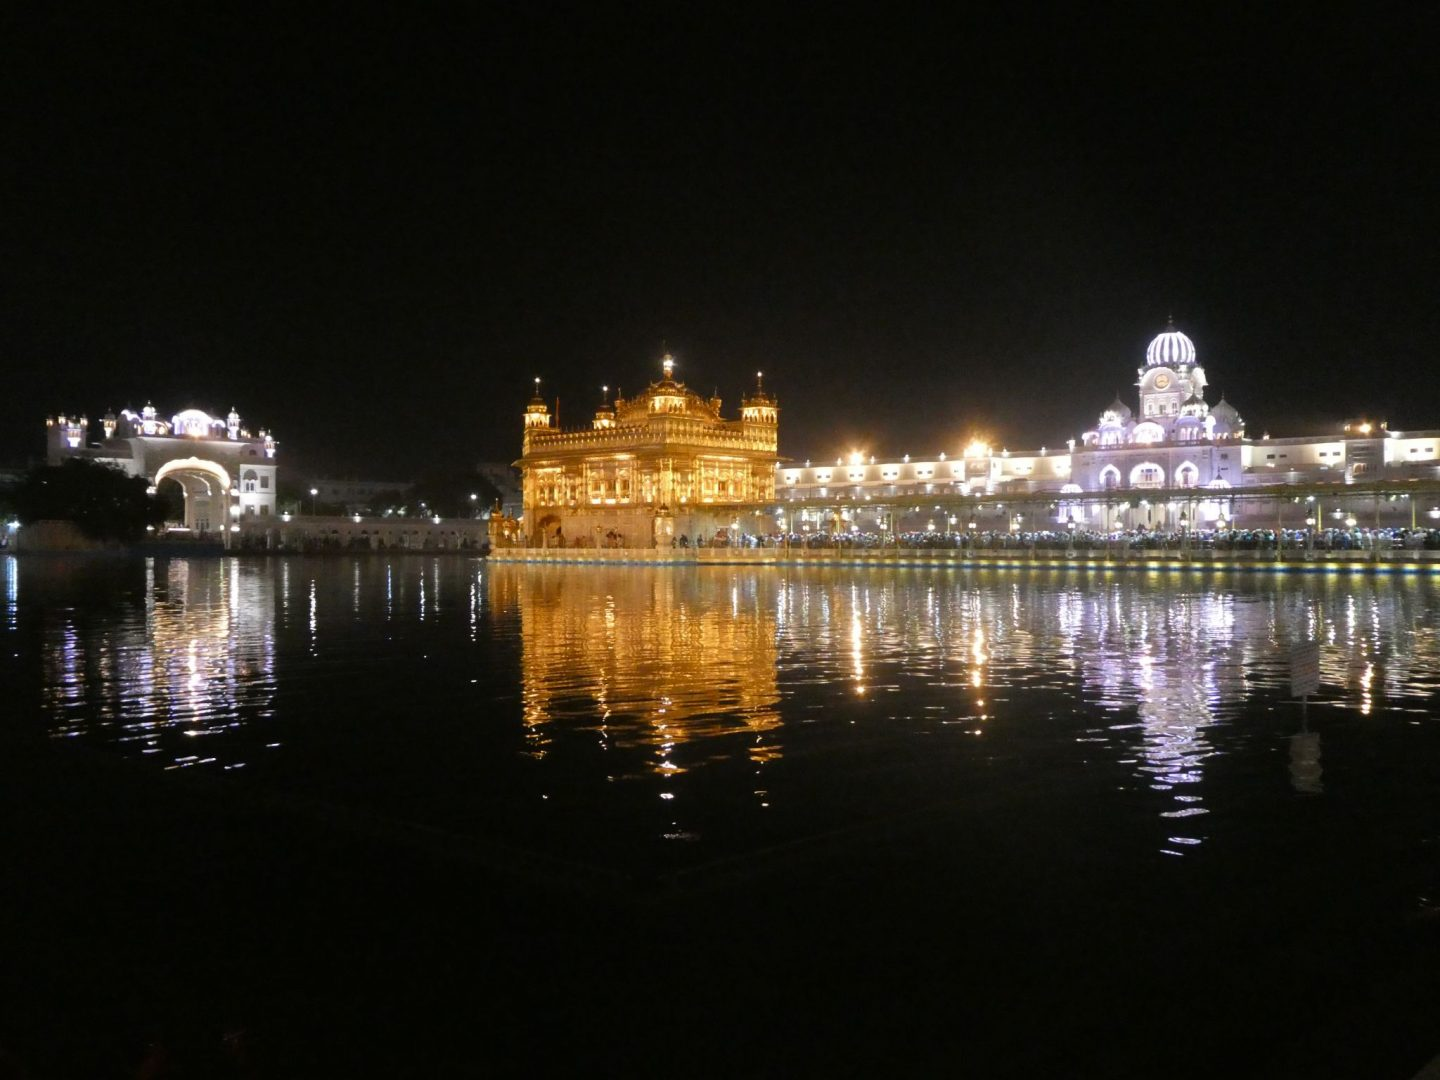 Amritsar (10 to 12 March 2018)